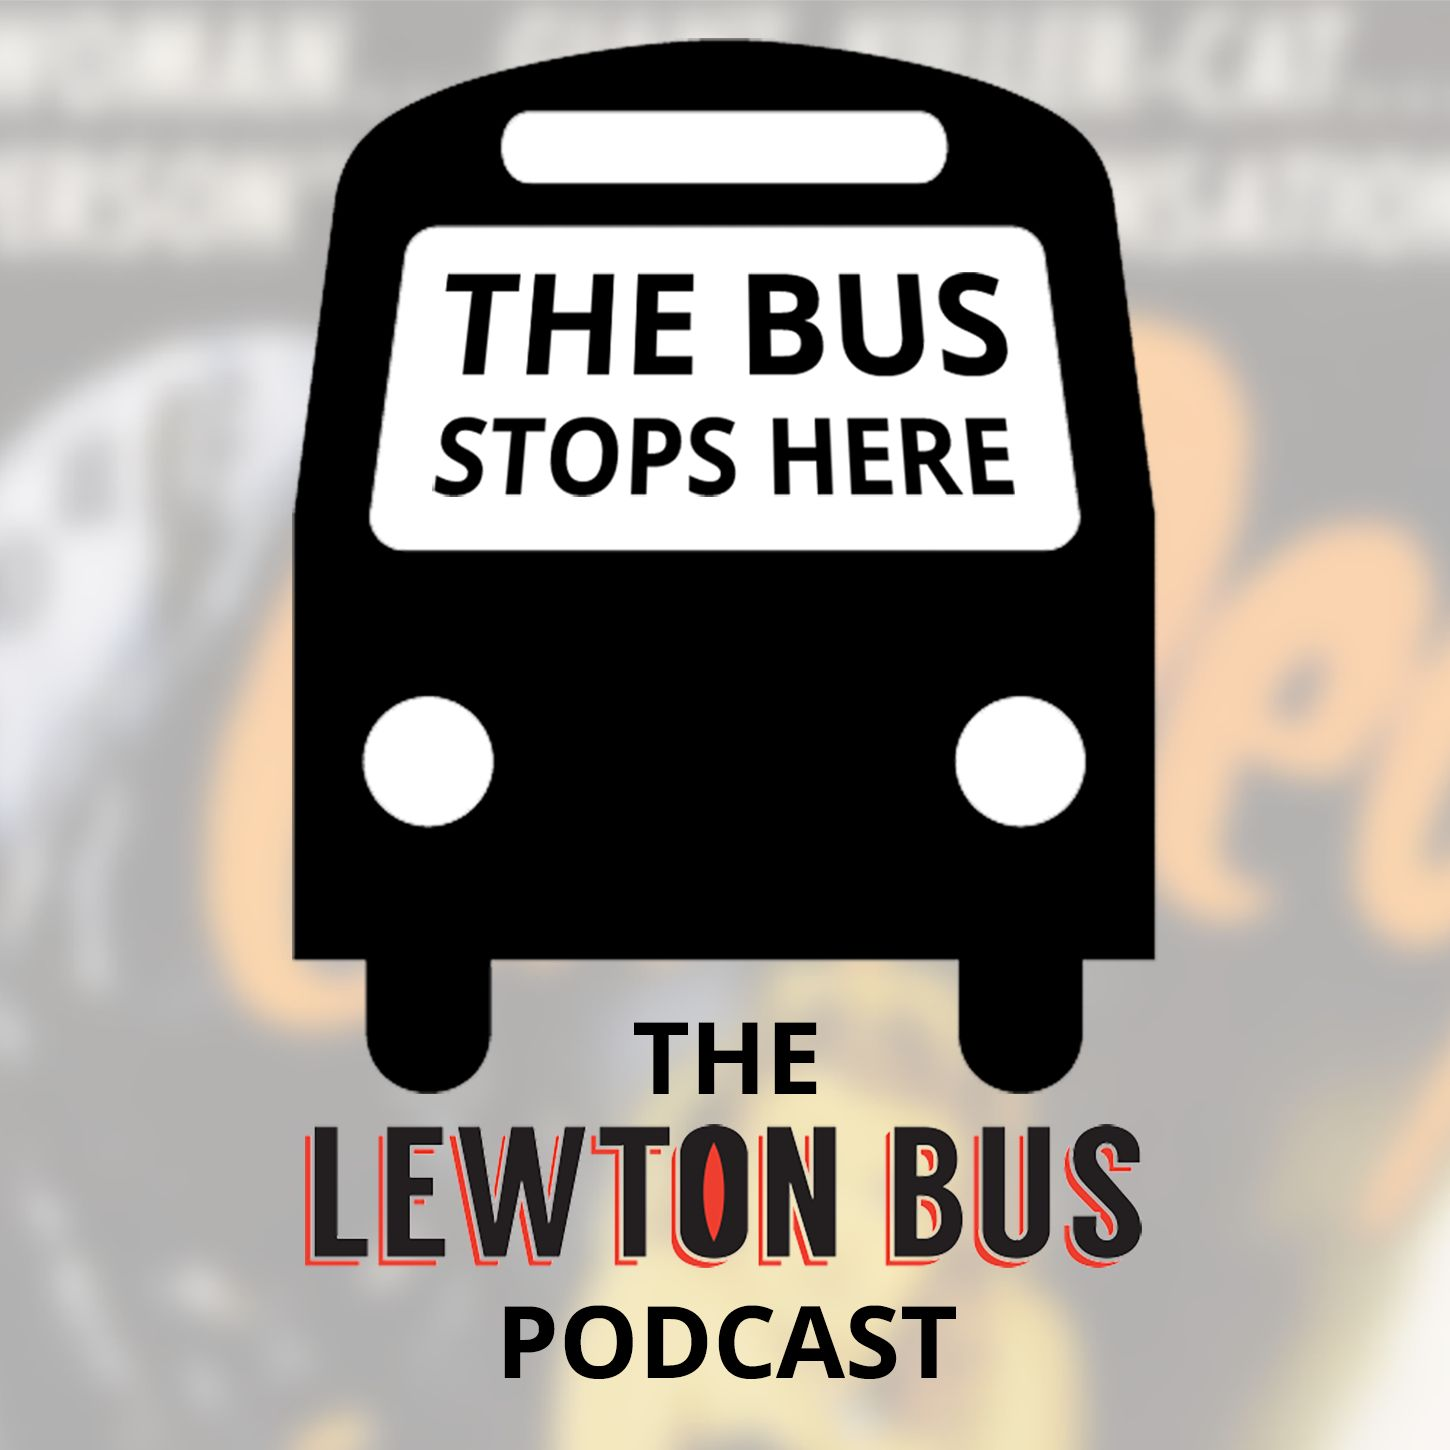 The Lewton Bus Podcast Network